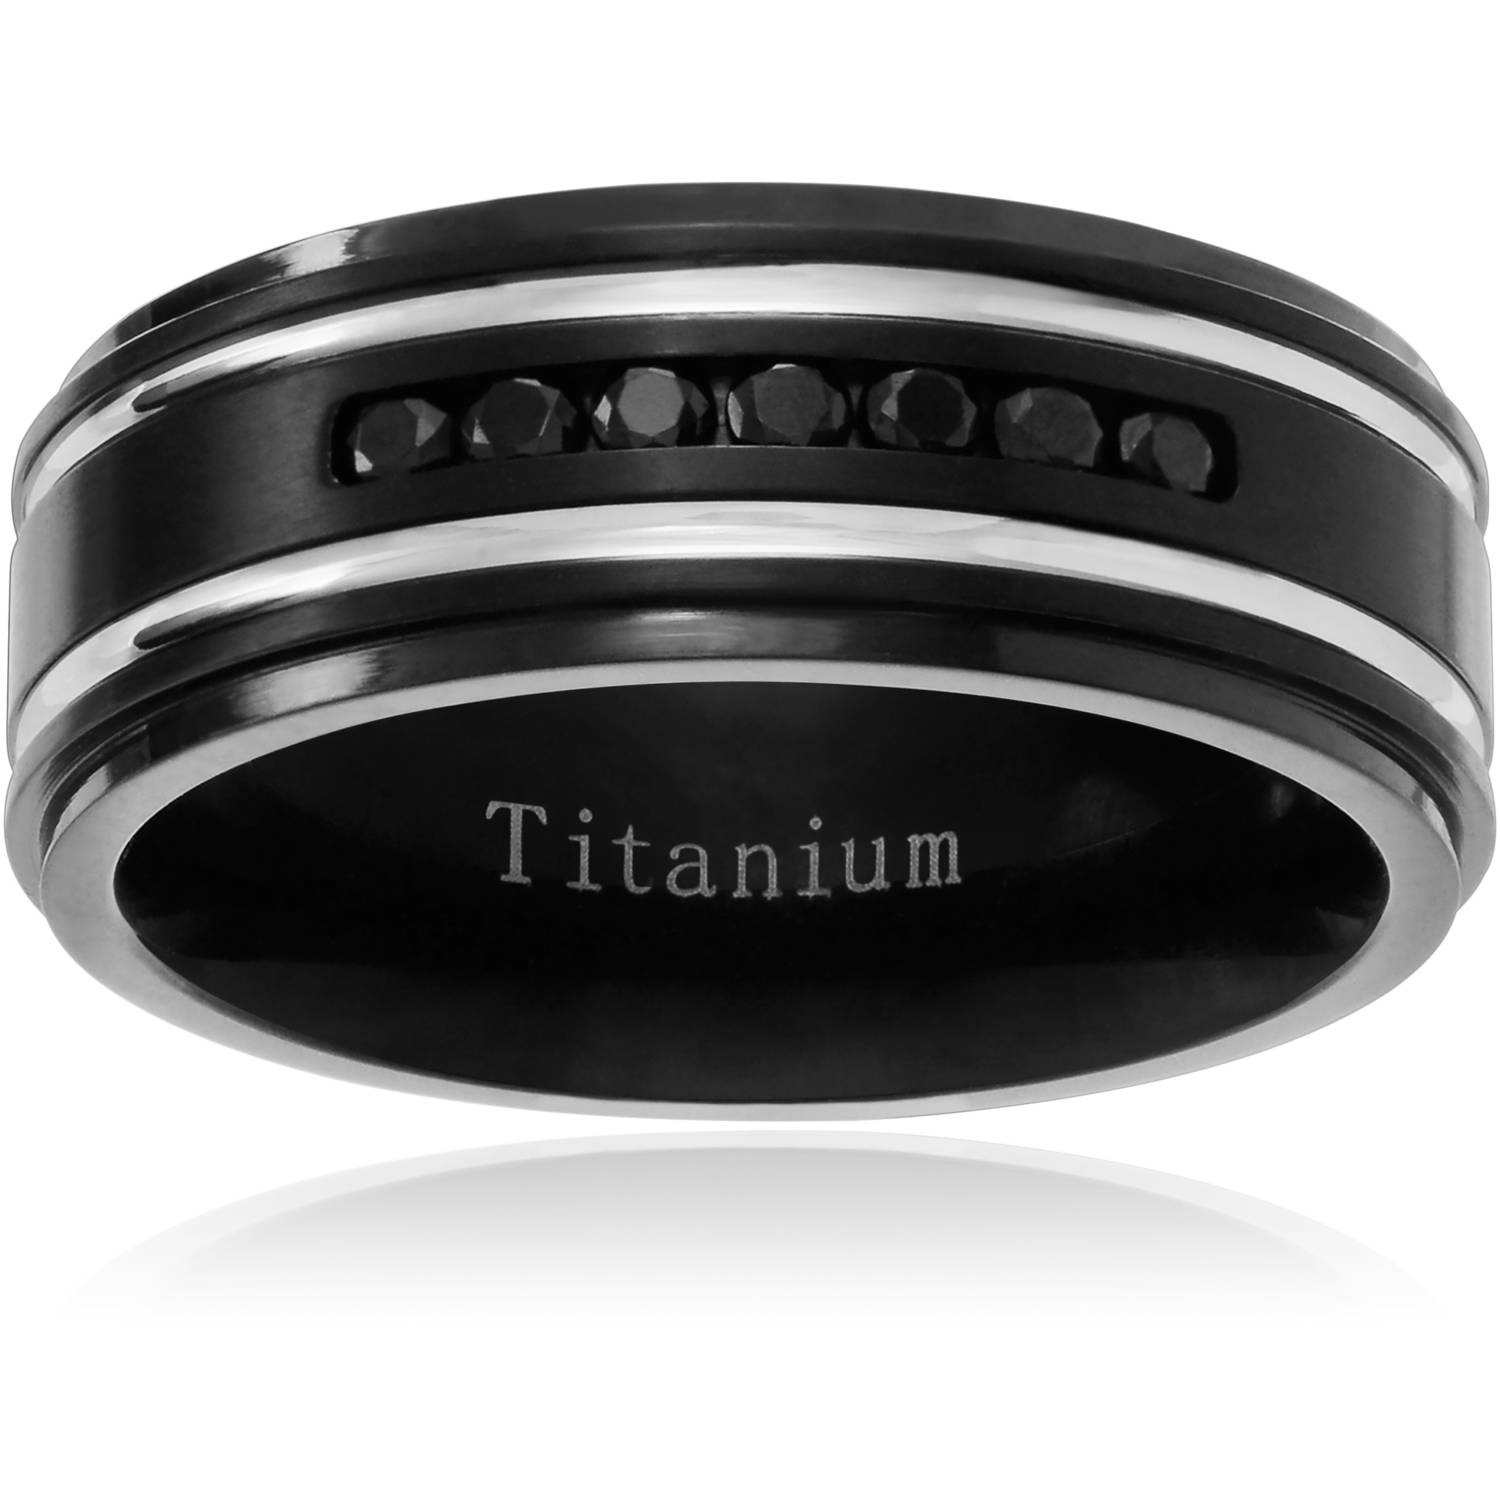 Daxx Men's Titanium Cubic Zirconia Double Grooved Wedding Band